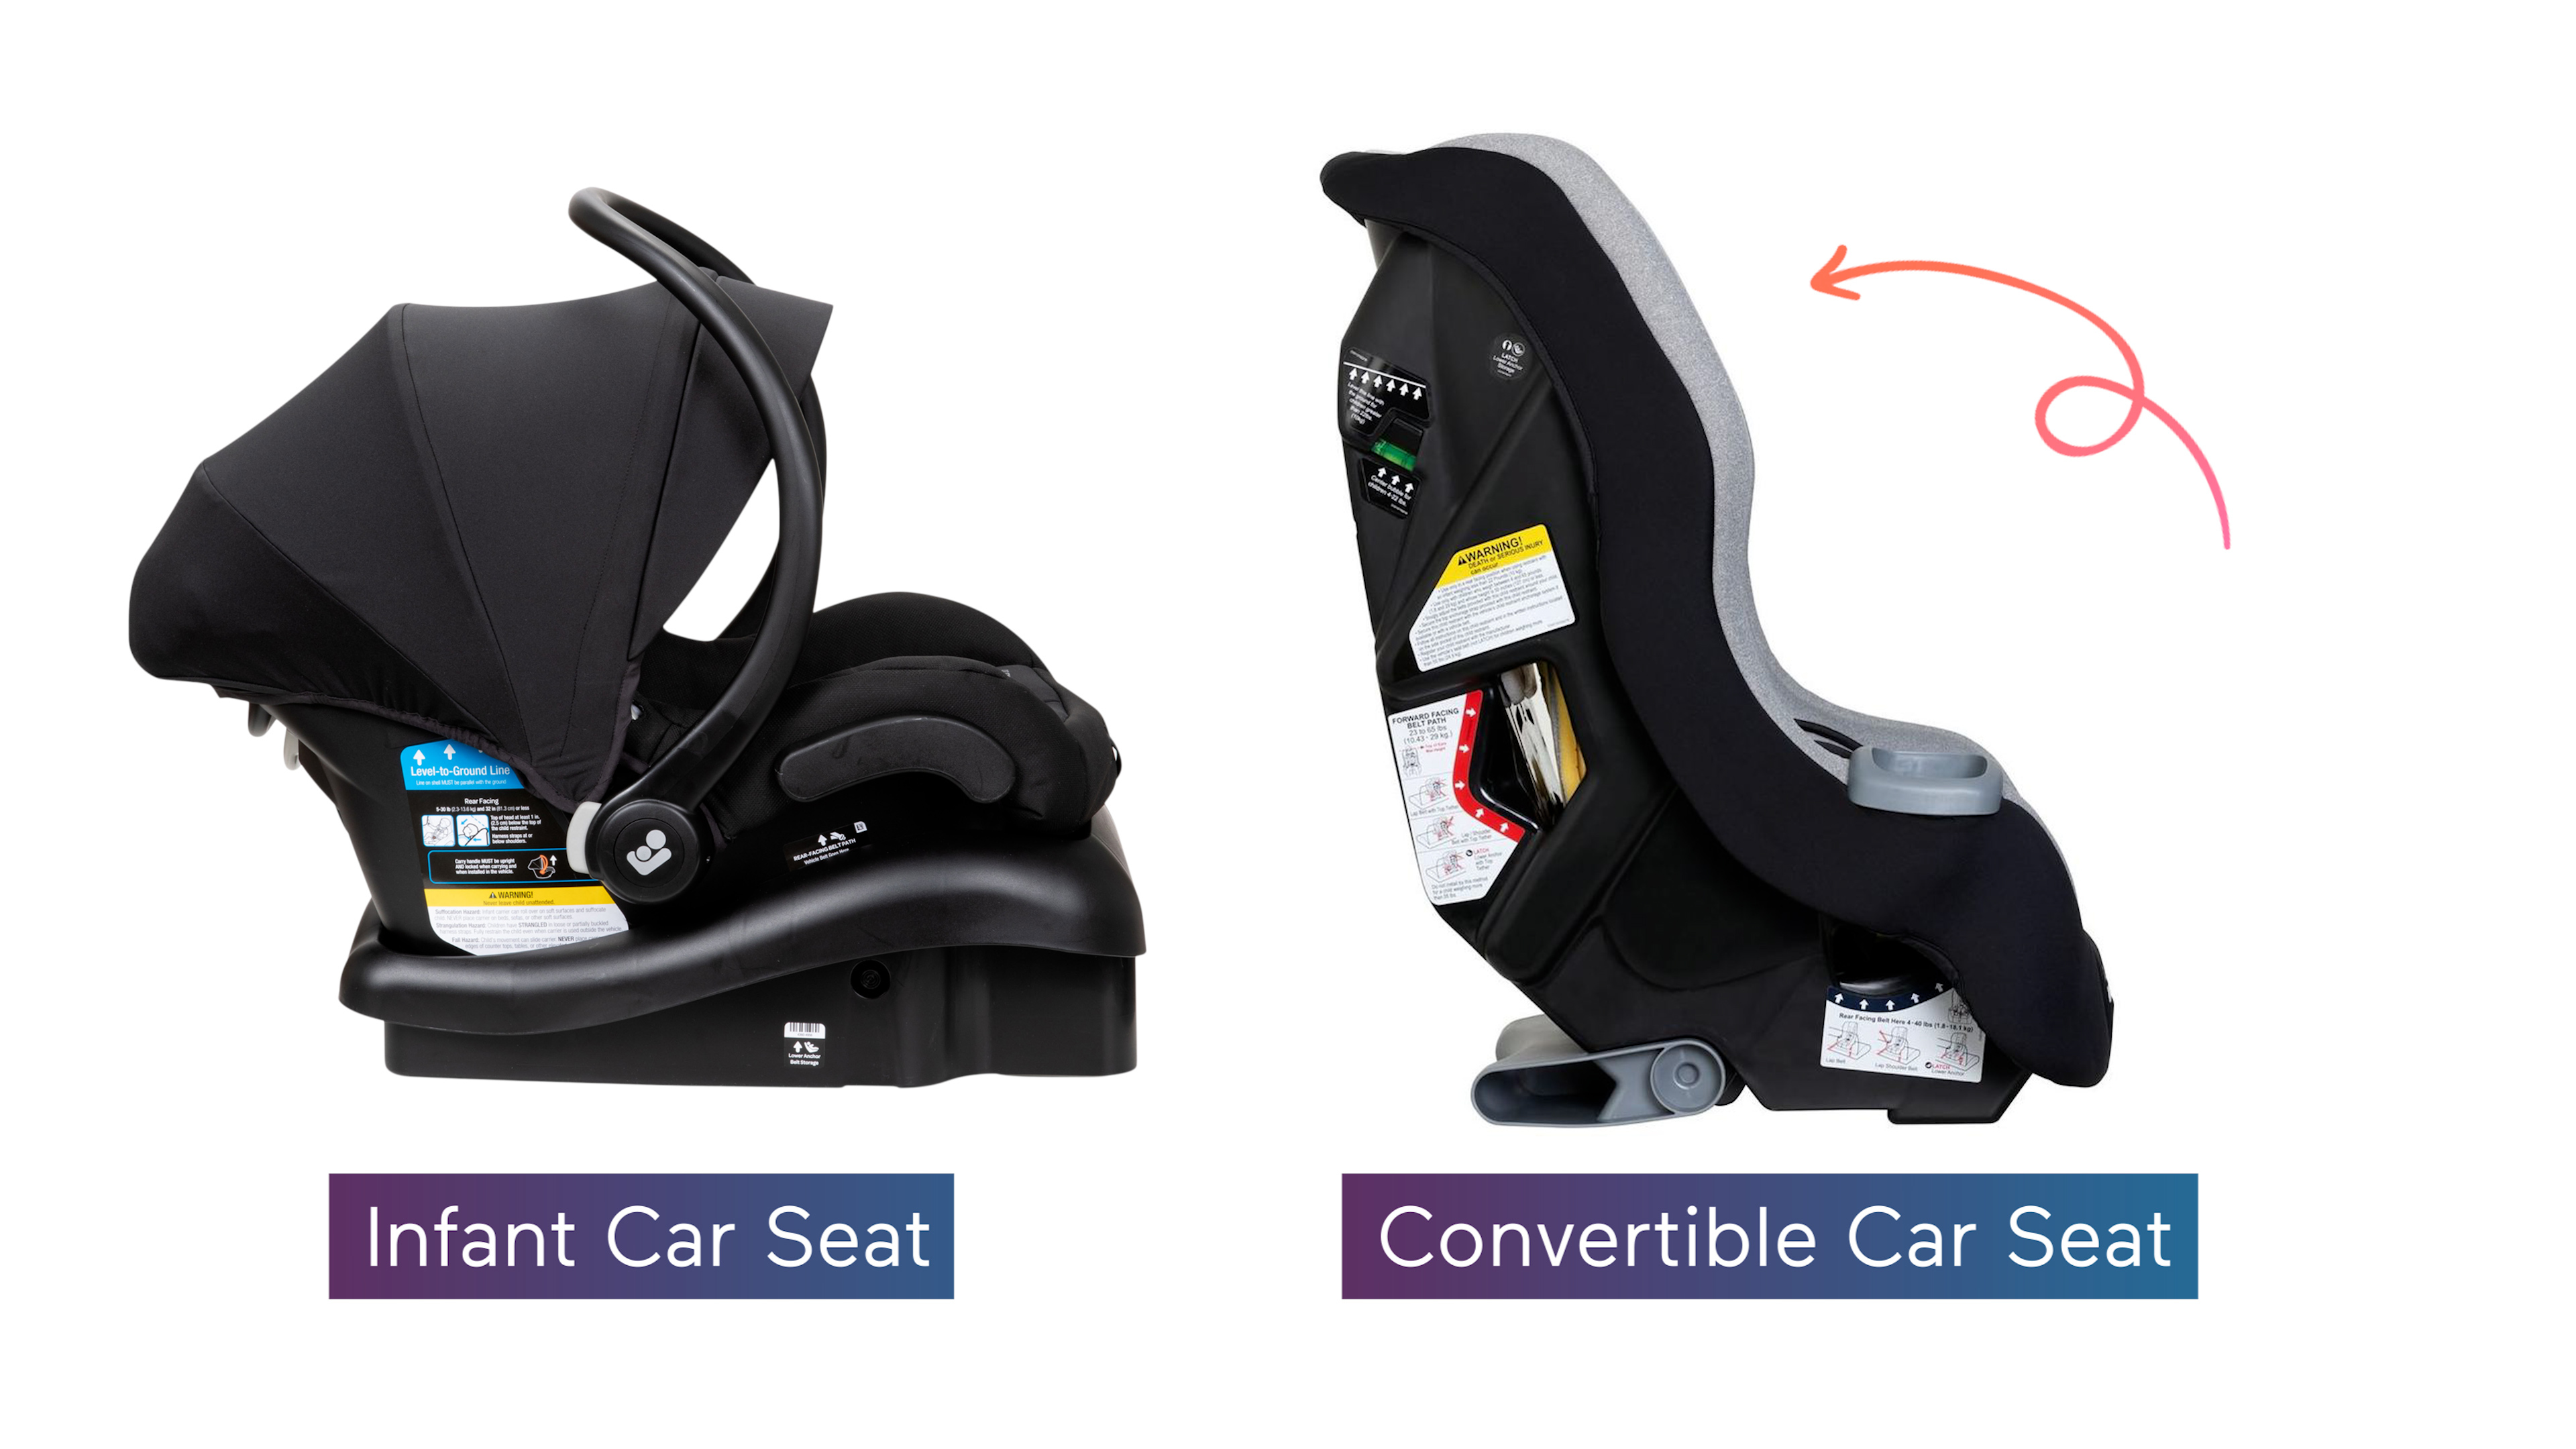 Baby Trend Cover Me vs Infant Seat